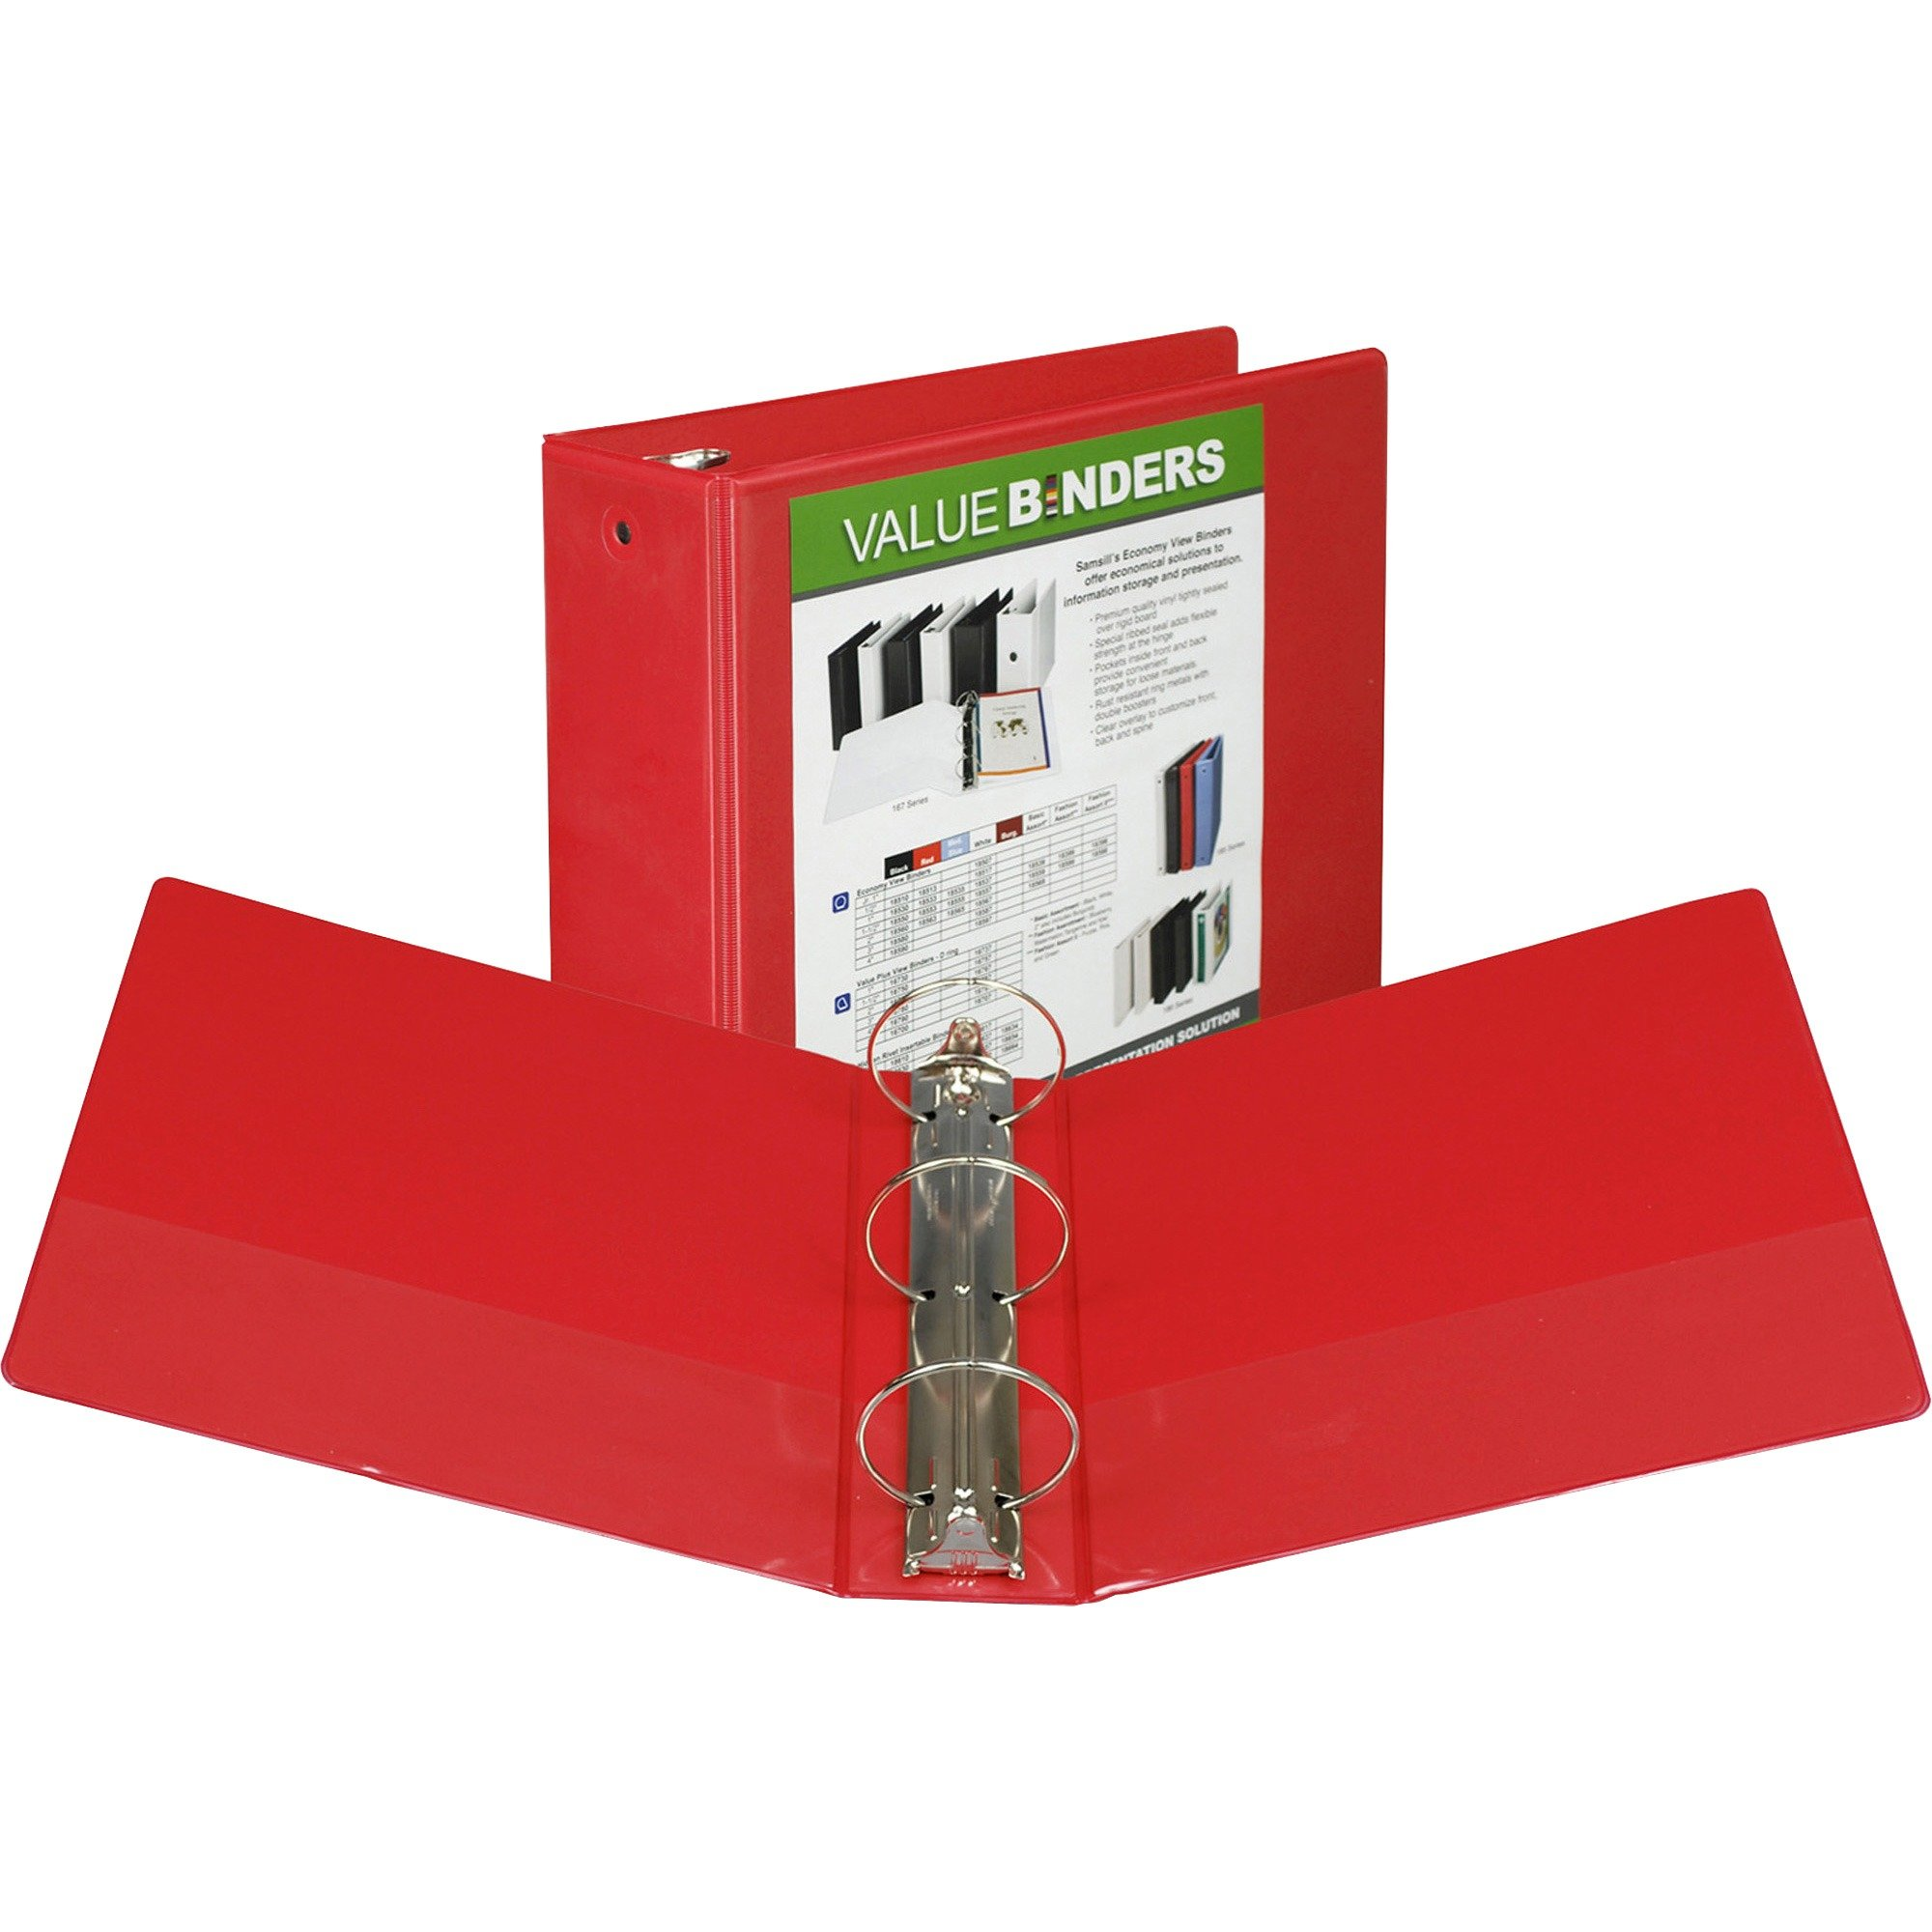 Samsill Economy 3 Ring View Binder, 3 Inch Round Ring Holds 550 Sheets, Customizable Clear View Cover, Red (18583)